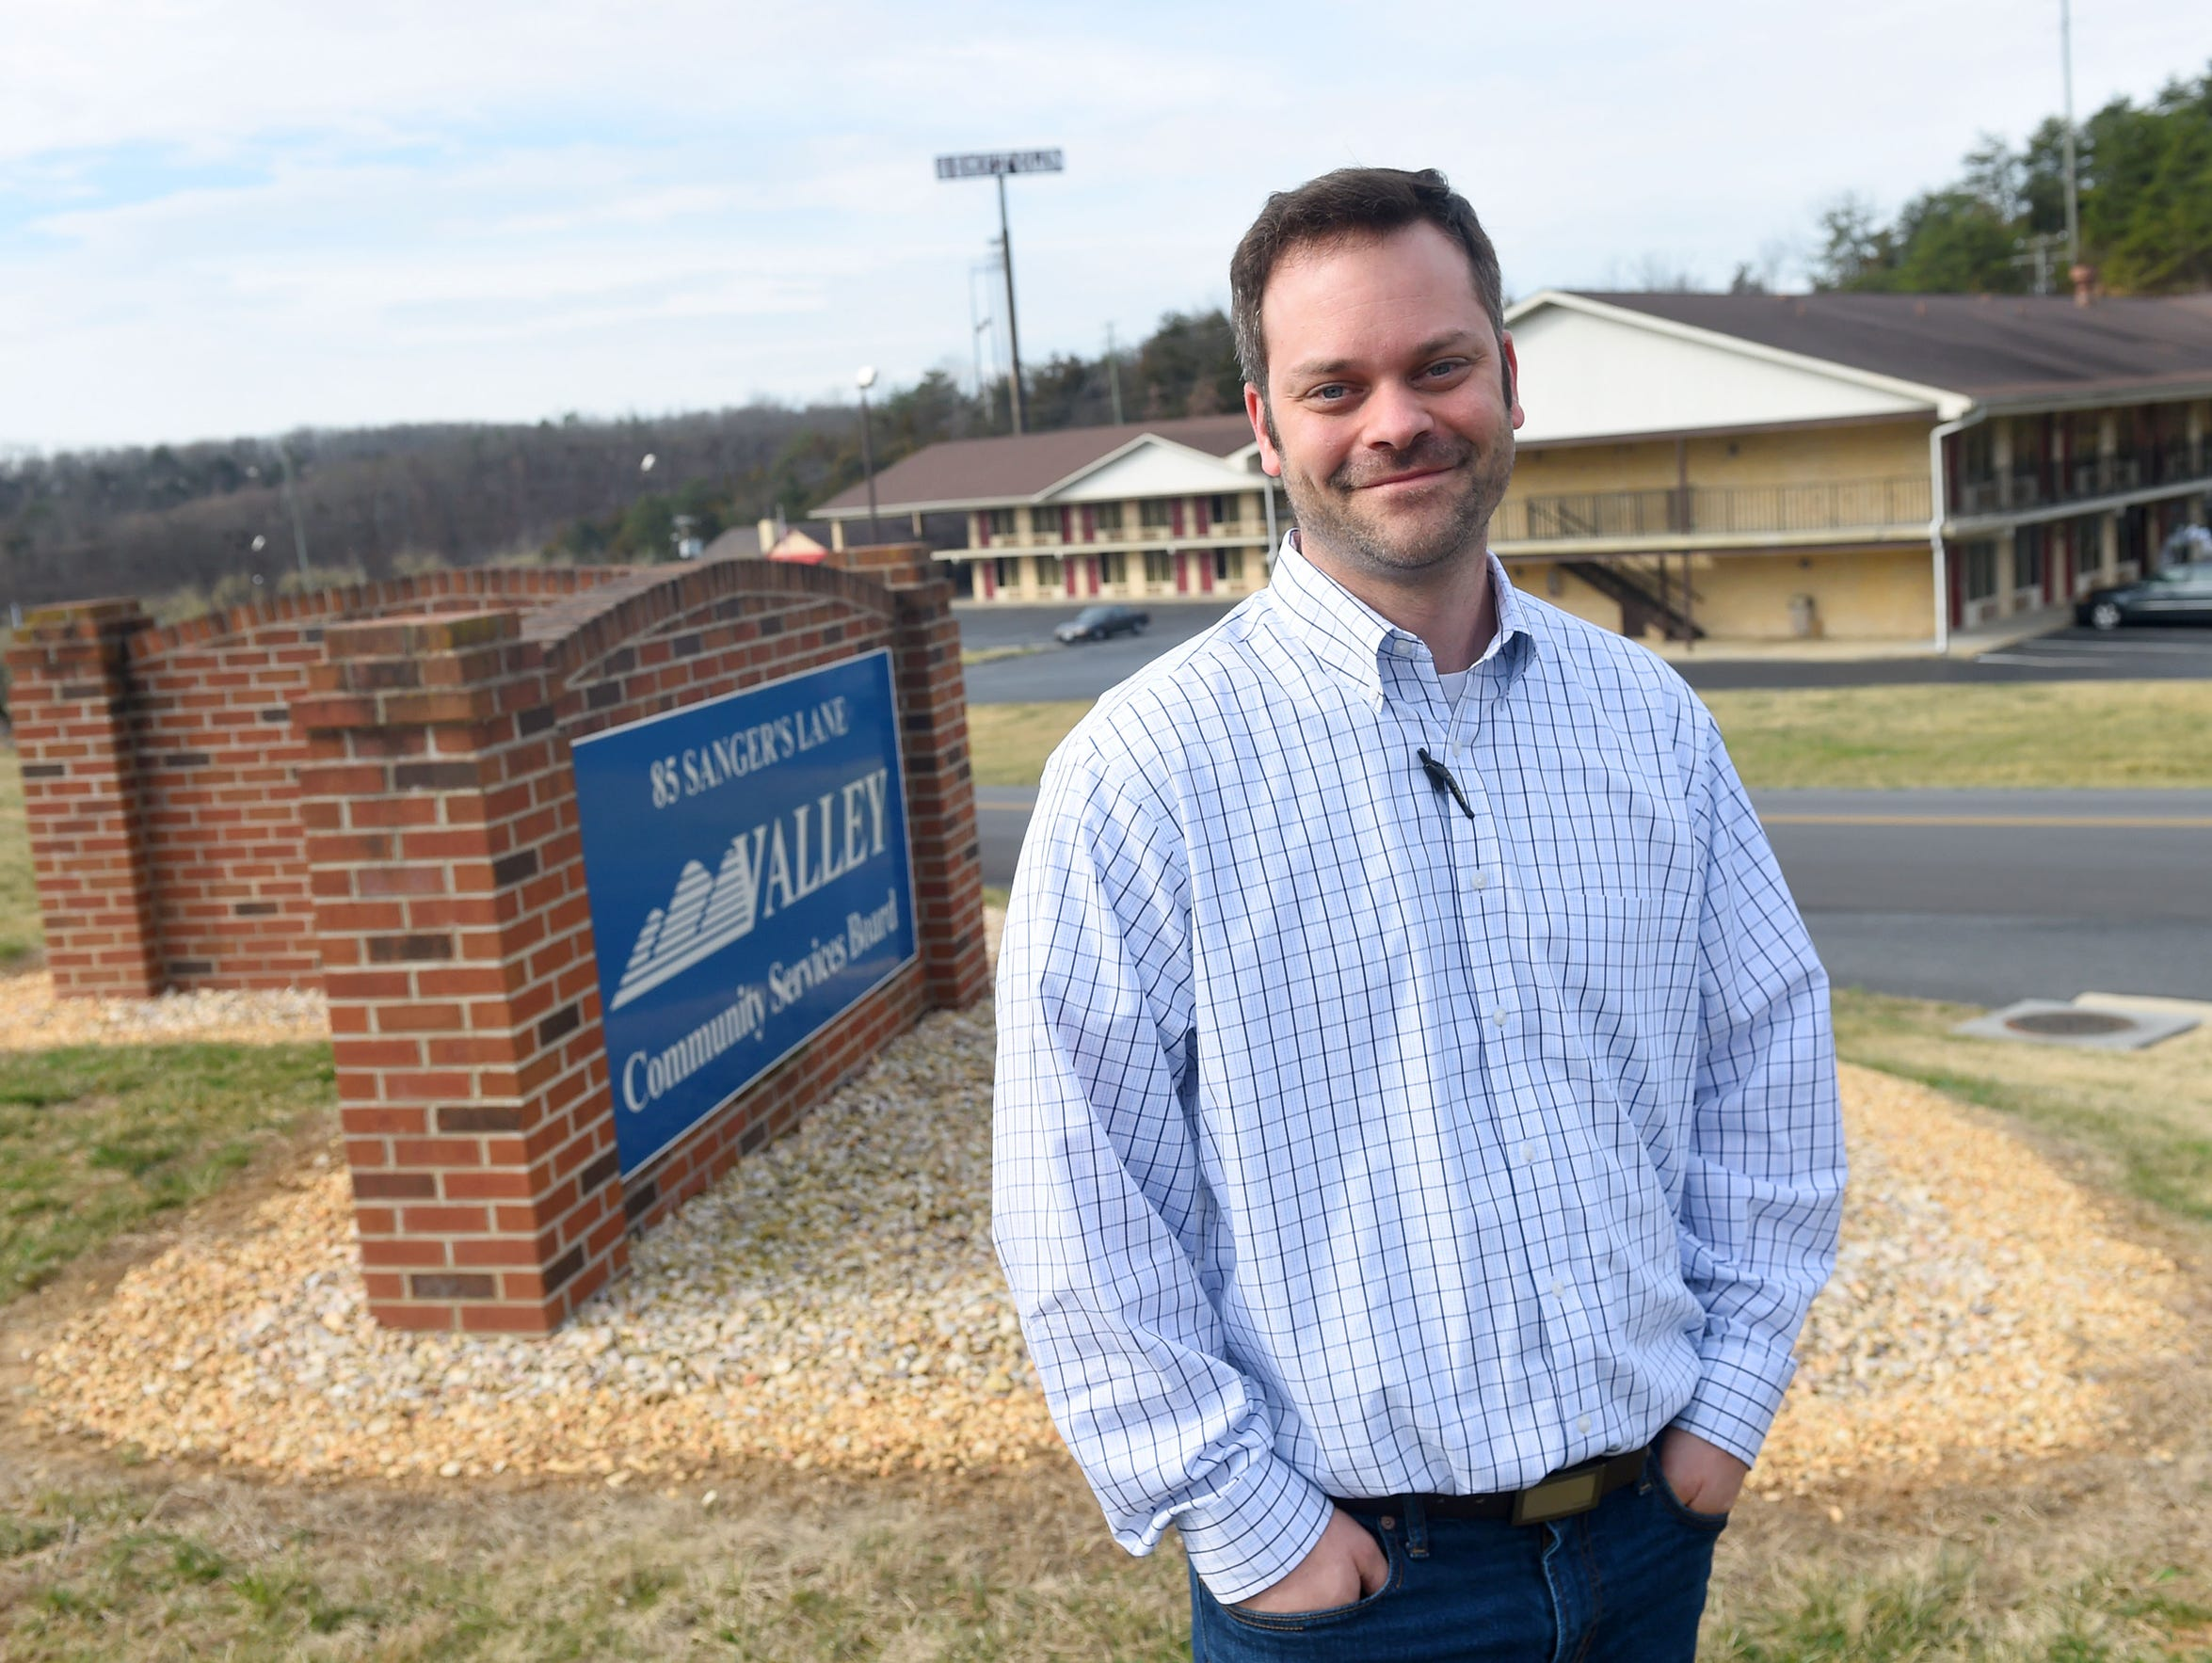 Dustin Wright works as community liaison with administrative